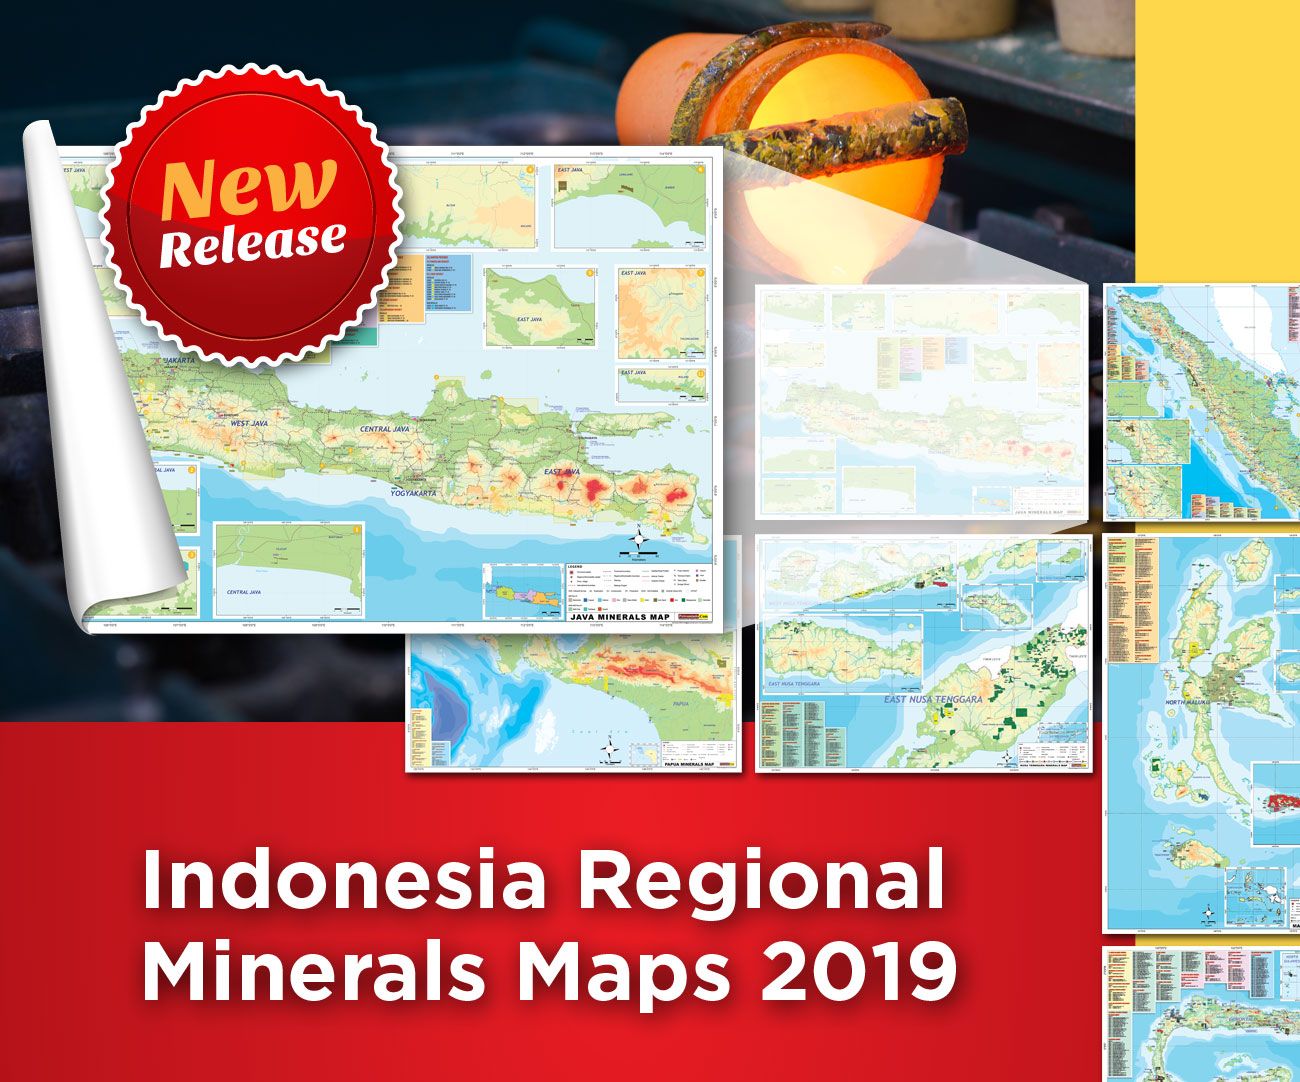 Indonesia Regional Mineral Maps 2019